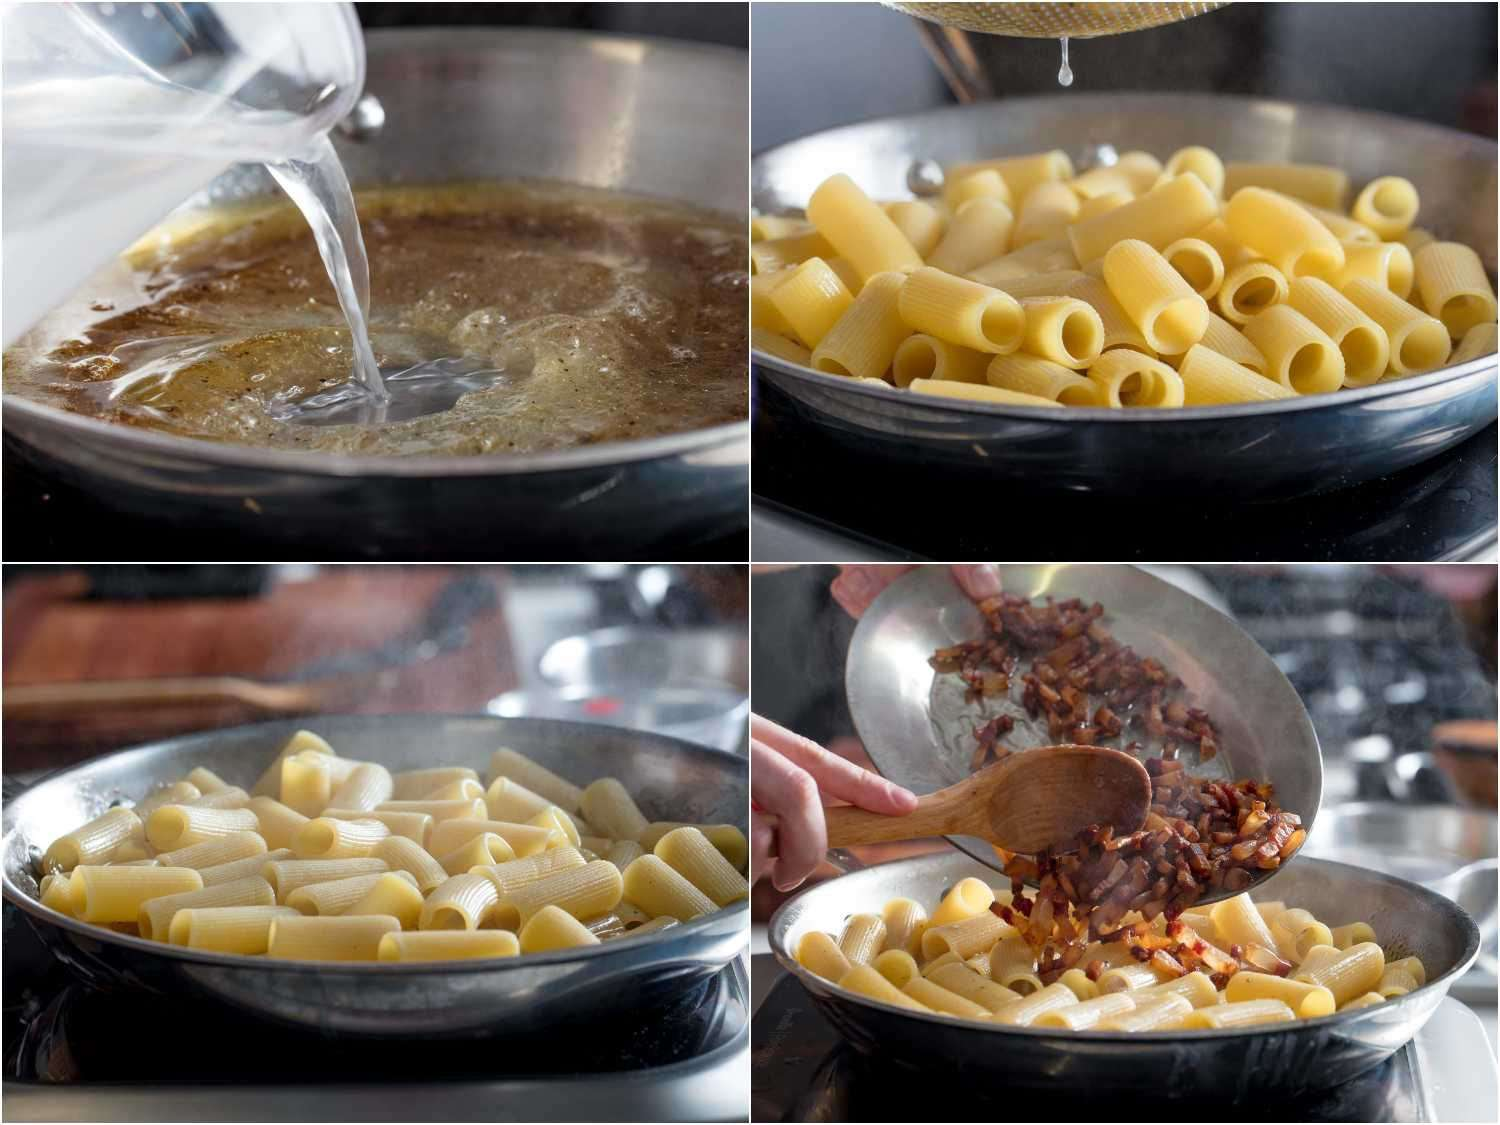 Process shots of building sauce emulsion and extended cooking of pasta in skillet